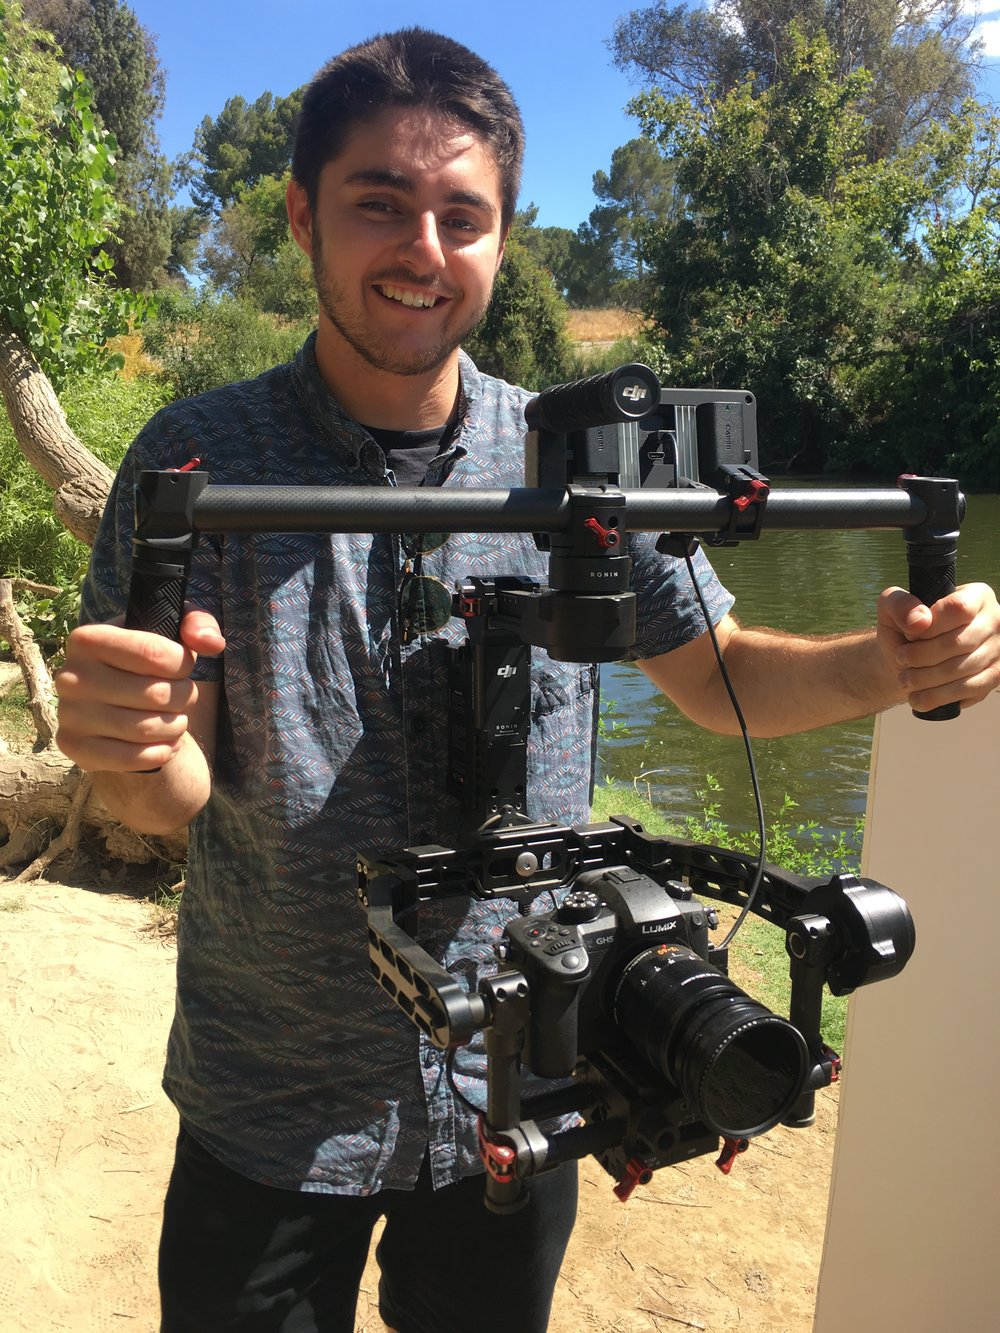 Our cinematographer Ethan Francis